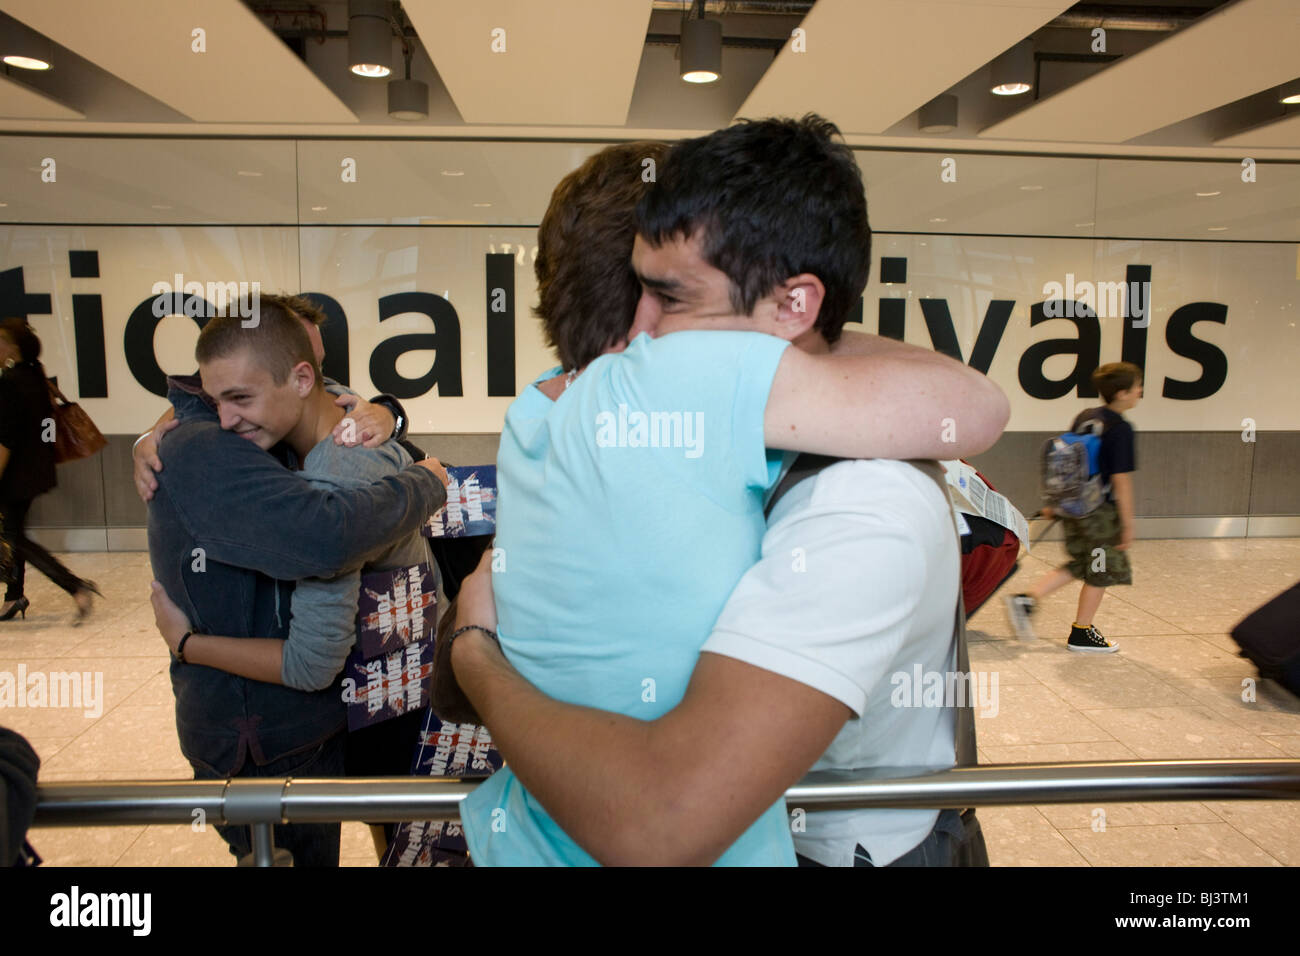 Mütter und Söhne umarmen emotional in der internationalen Ankünfte Hall von Heathrow Airport Terminal Stockbild